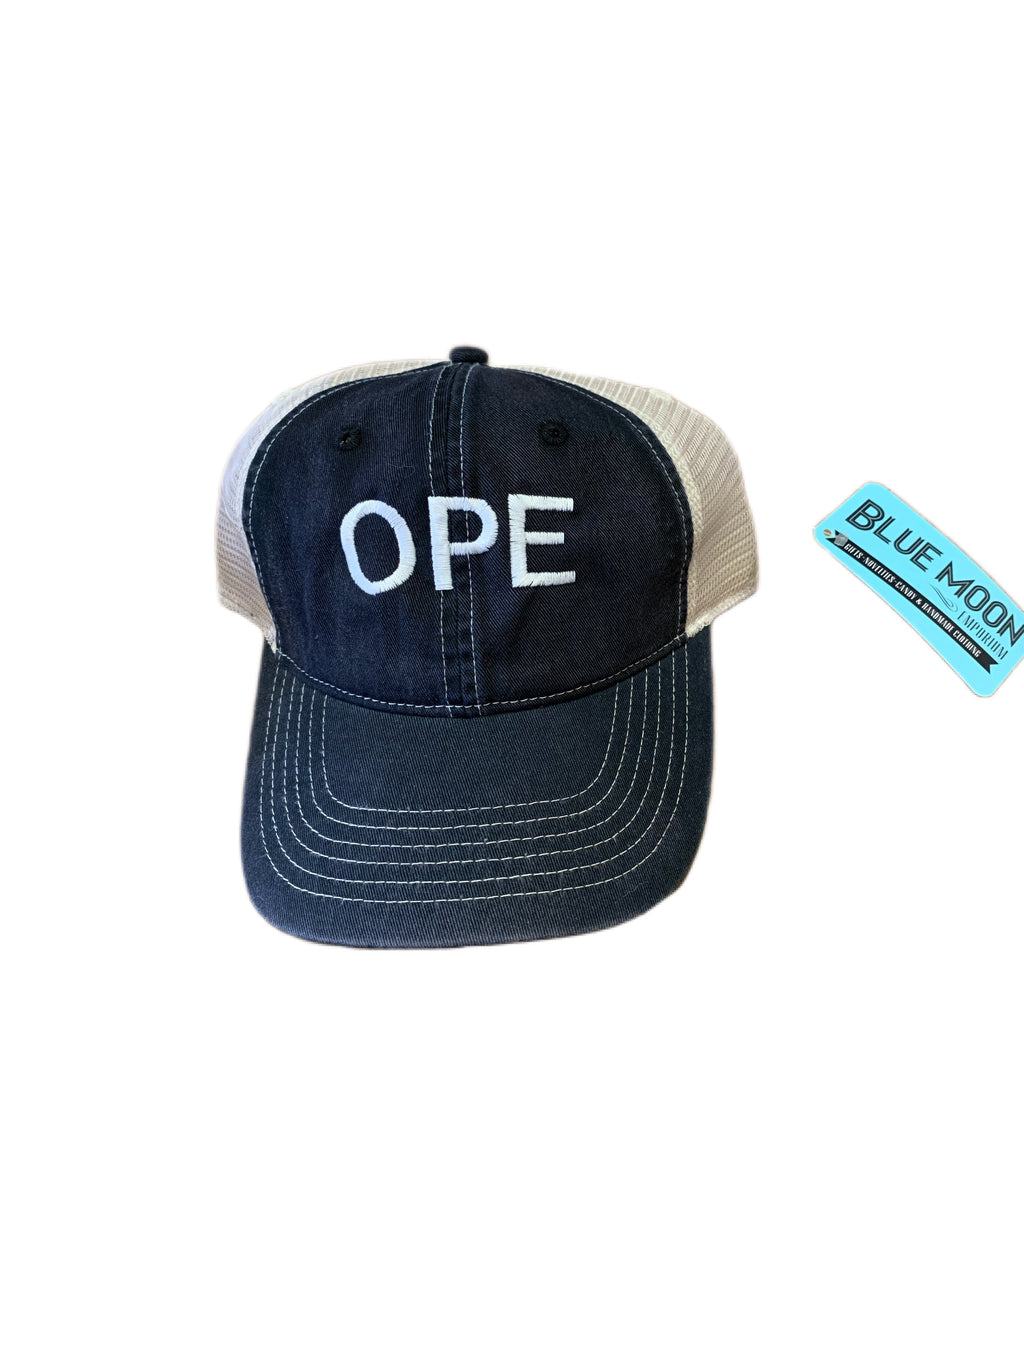 OPE Trucker Hat